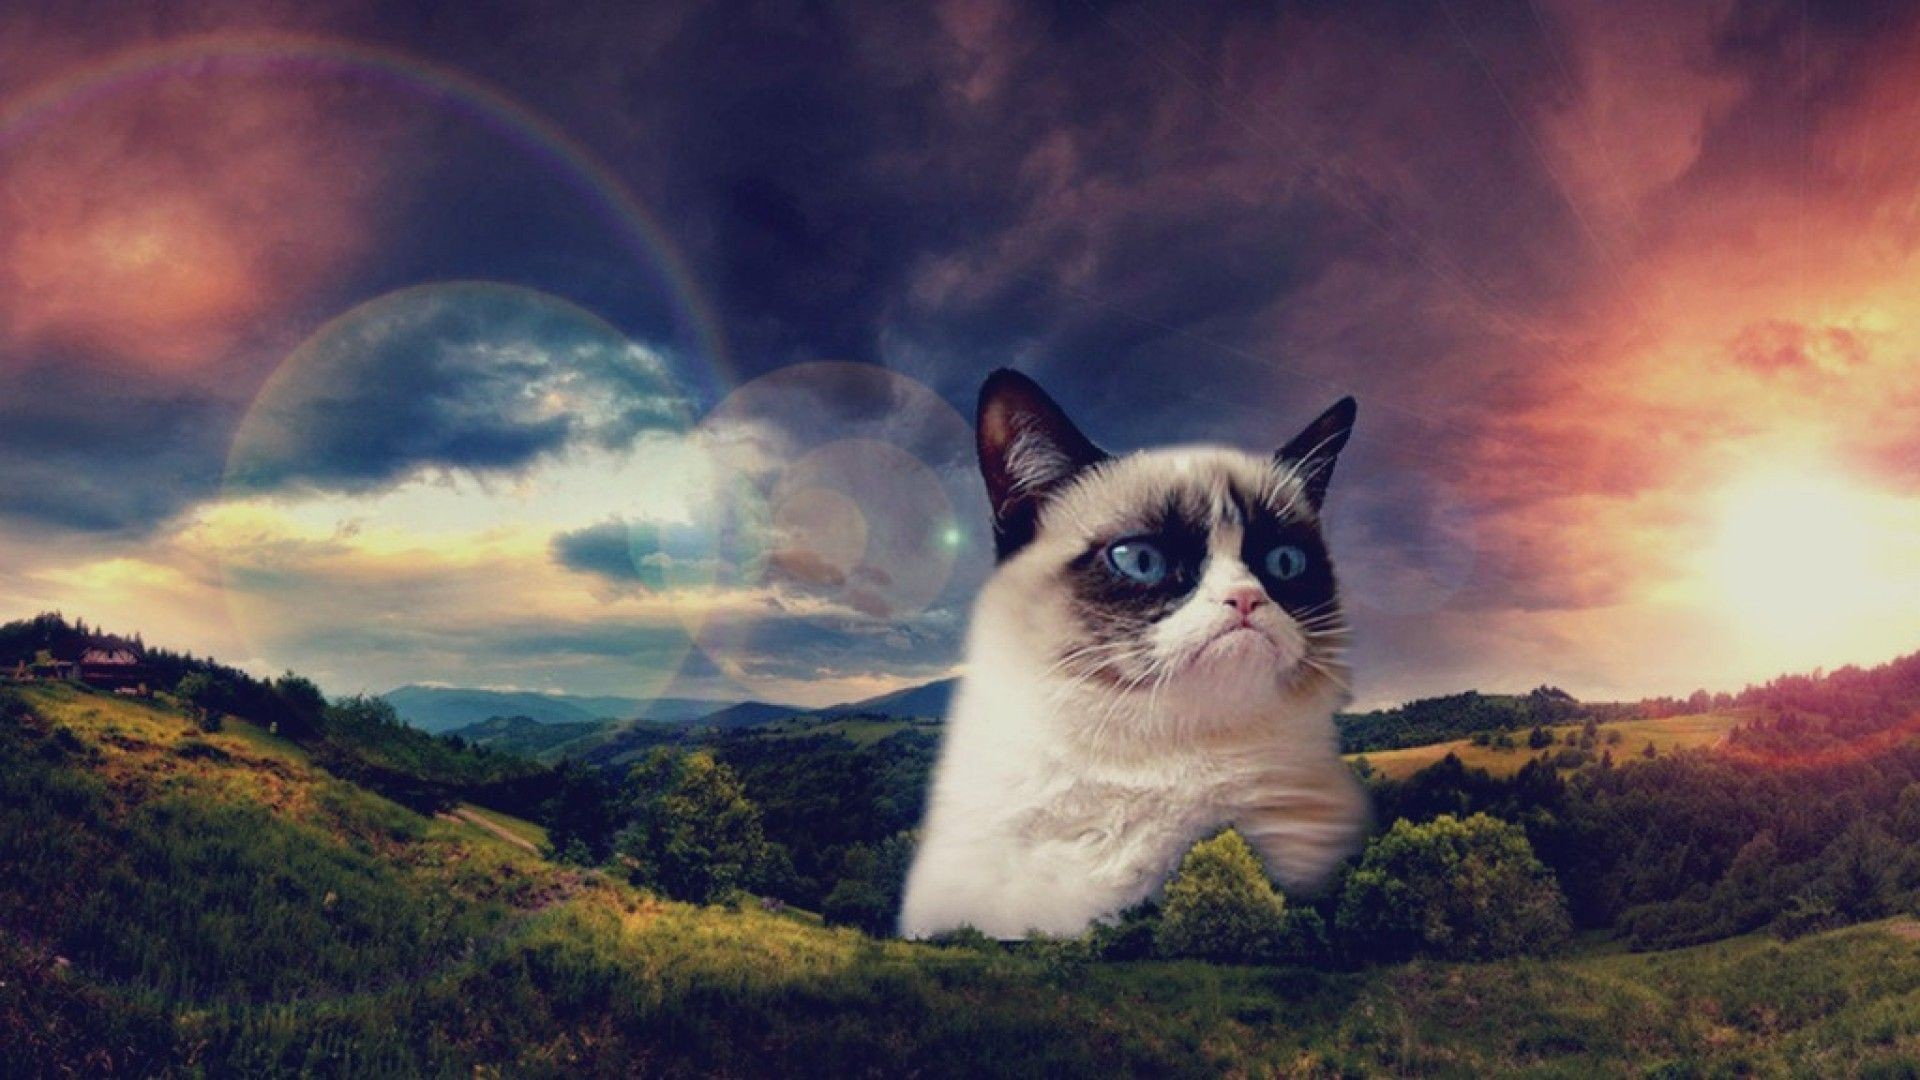 Space cats hd wallpaper 78 images - Space kitty wallpaper ...